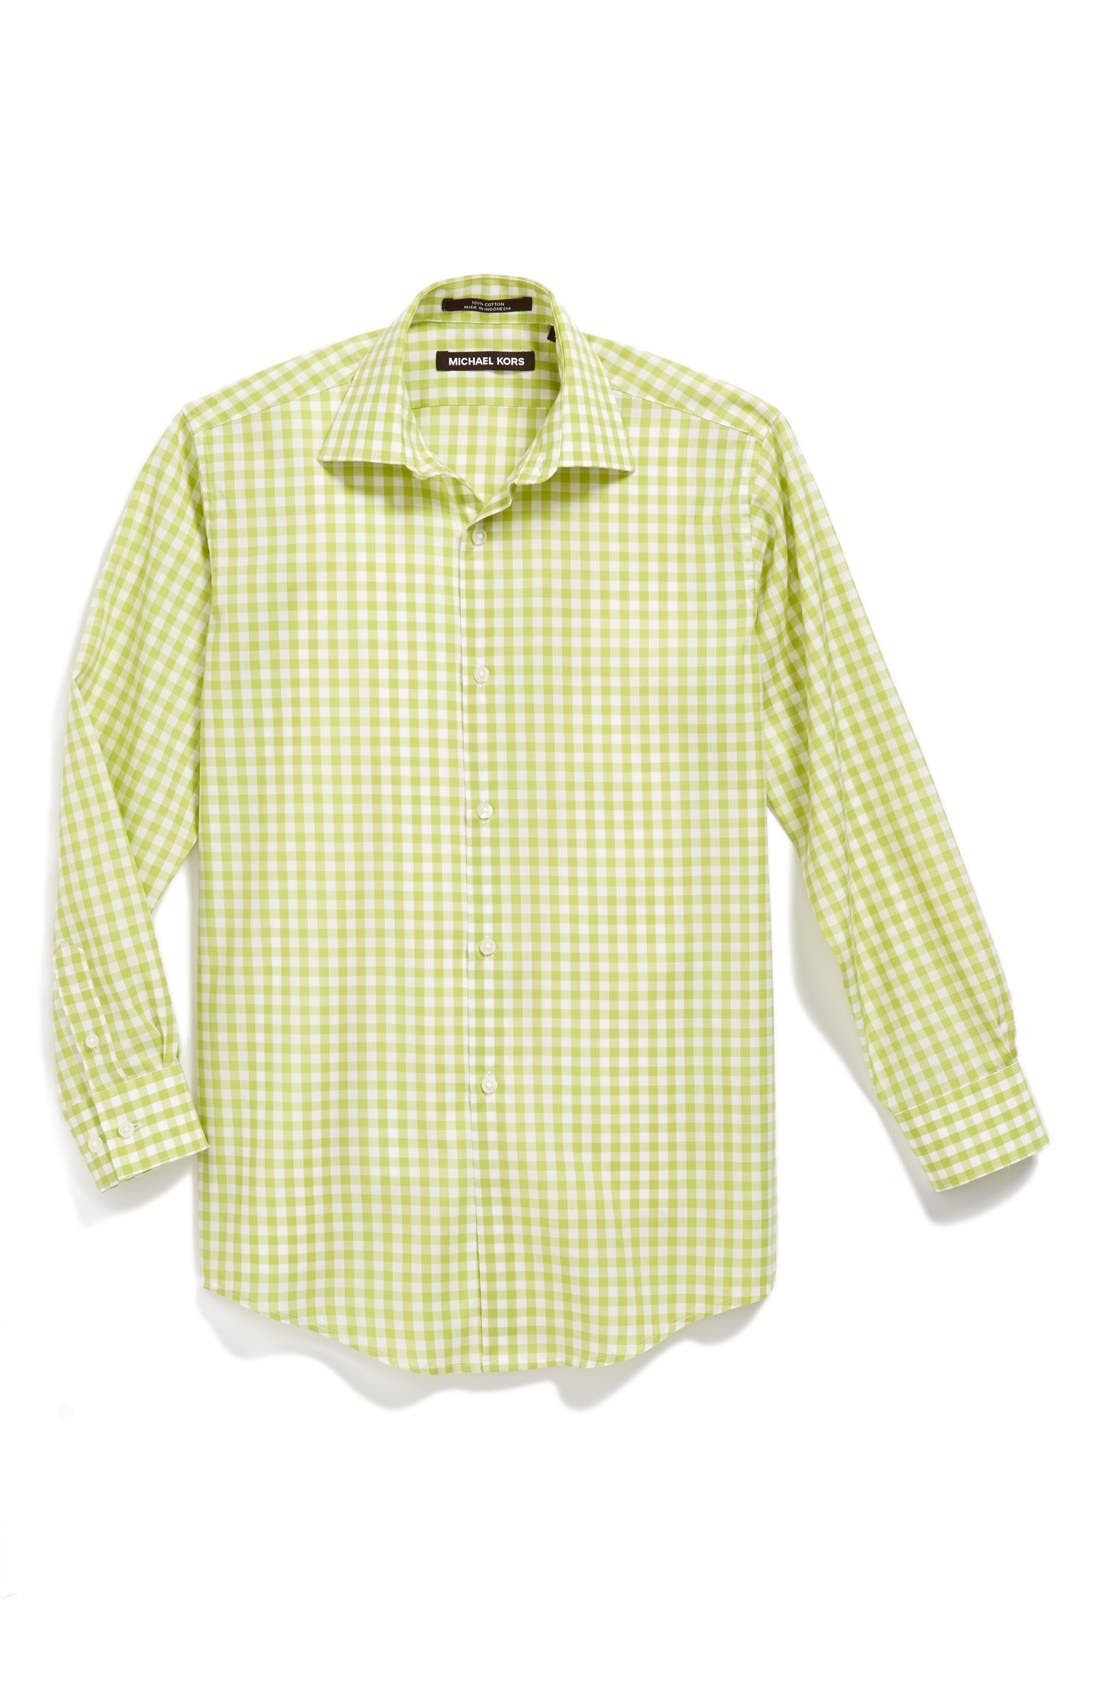 Main Image - Michael Kors Gingham Dress Shirt (Big Boys)